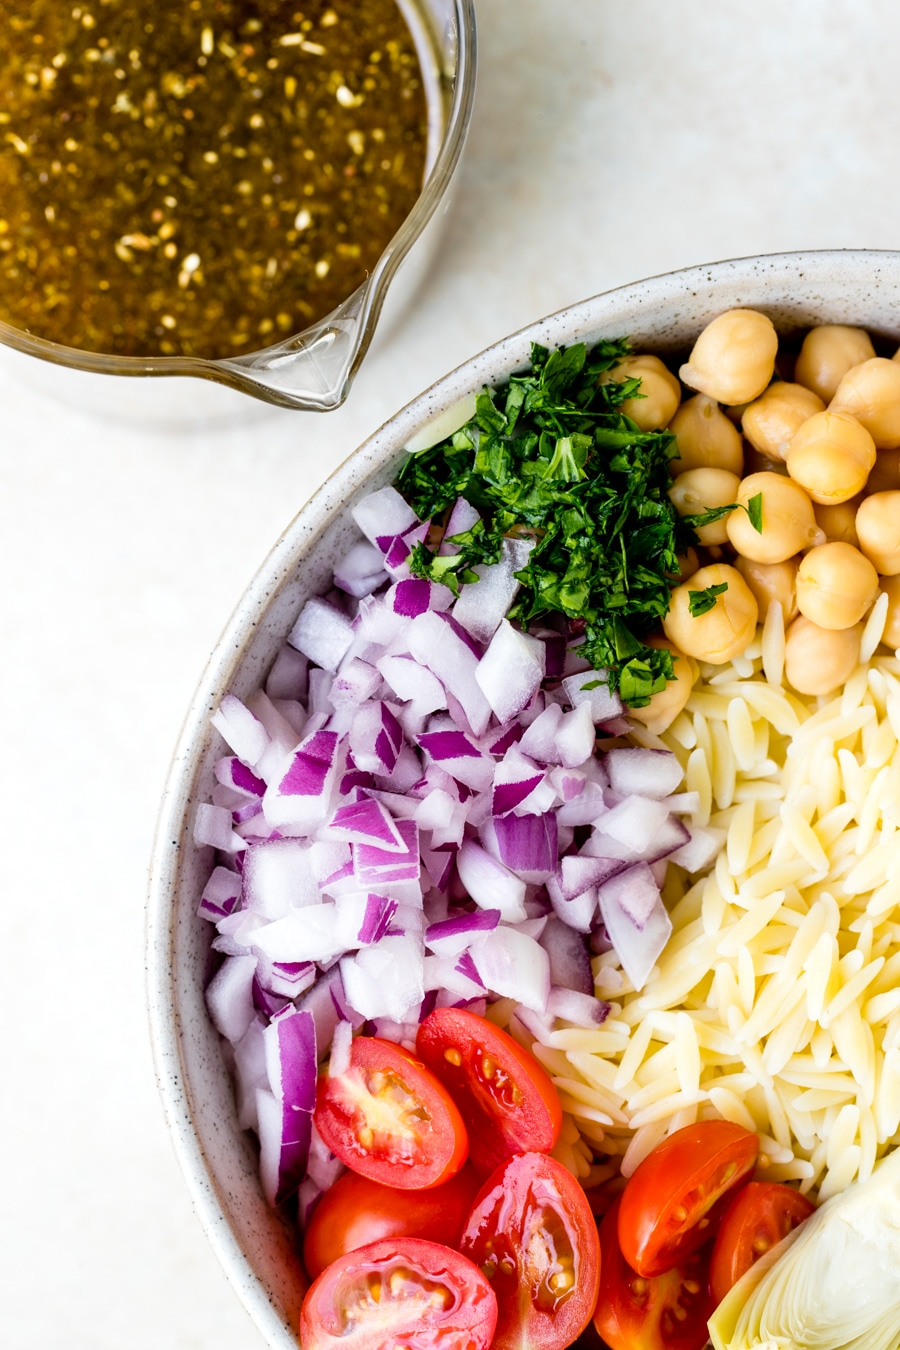 Orzo Salad Recipe in a large white bowl with red onion, cherry tomatoes, parsley and garbanzo beans